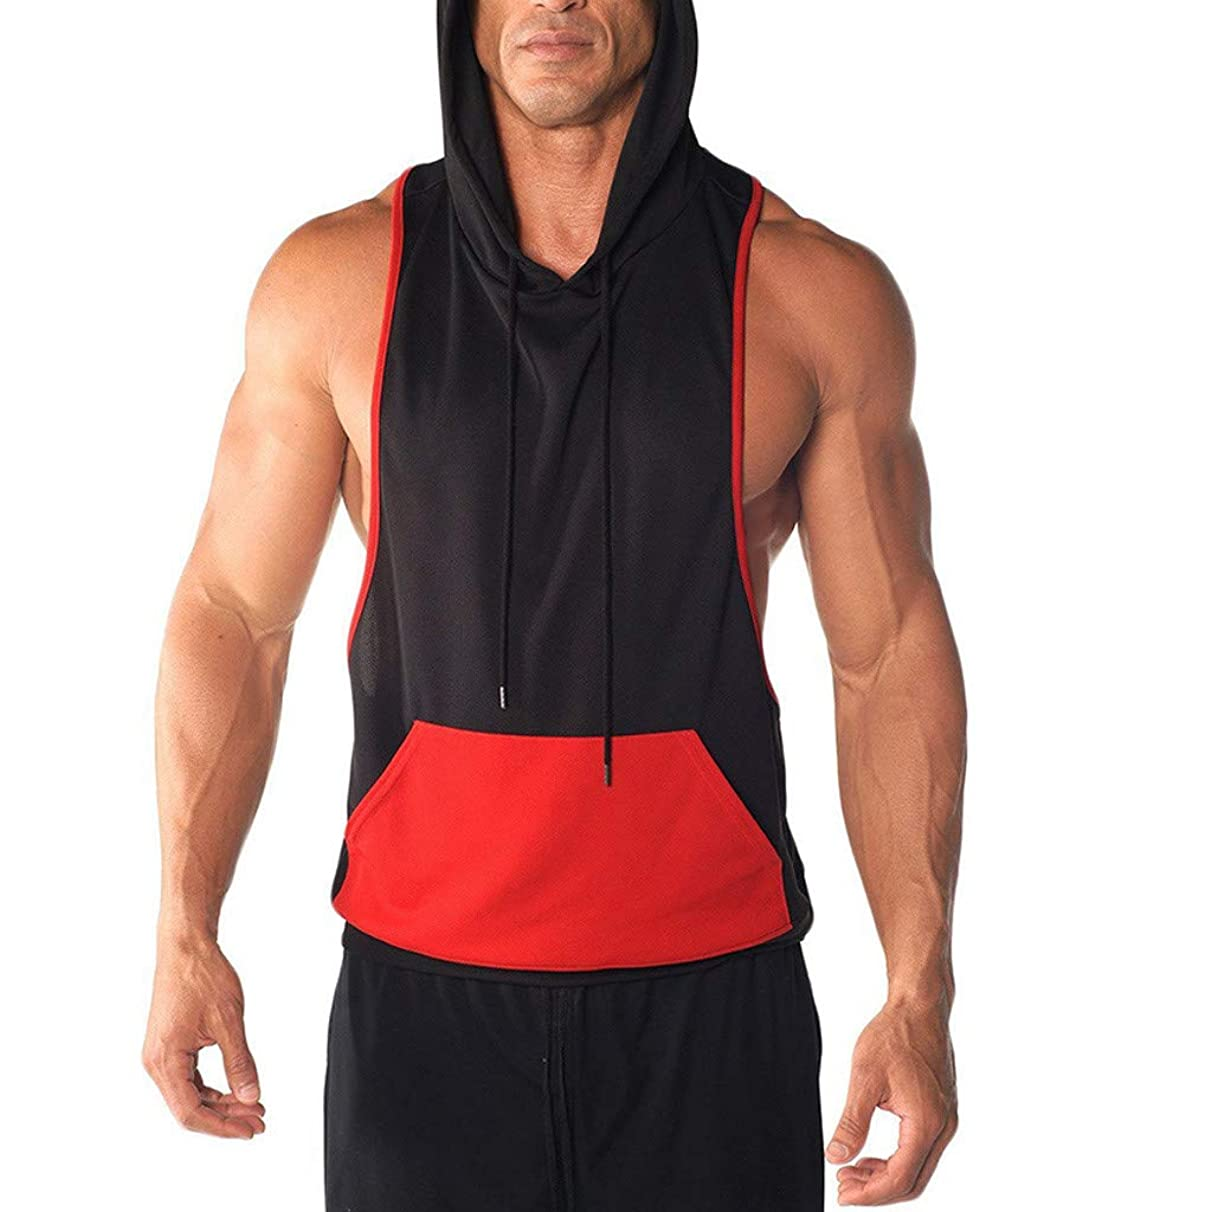 Mens Gym Hoodie Muscle Fitness Vest,MmNote Workout Athletic Pocket Design Sleeveless Loose Sports No Zip Tank Top